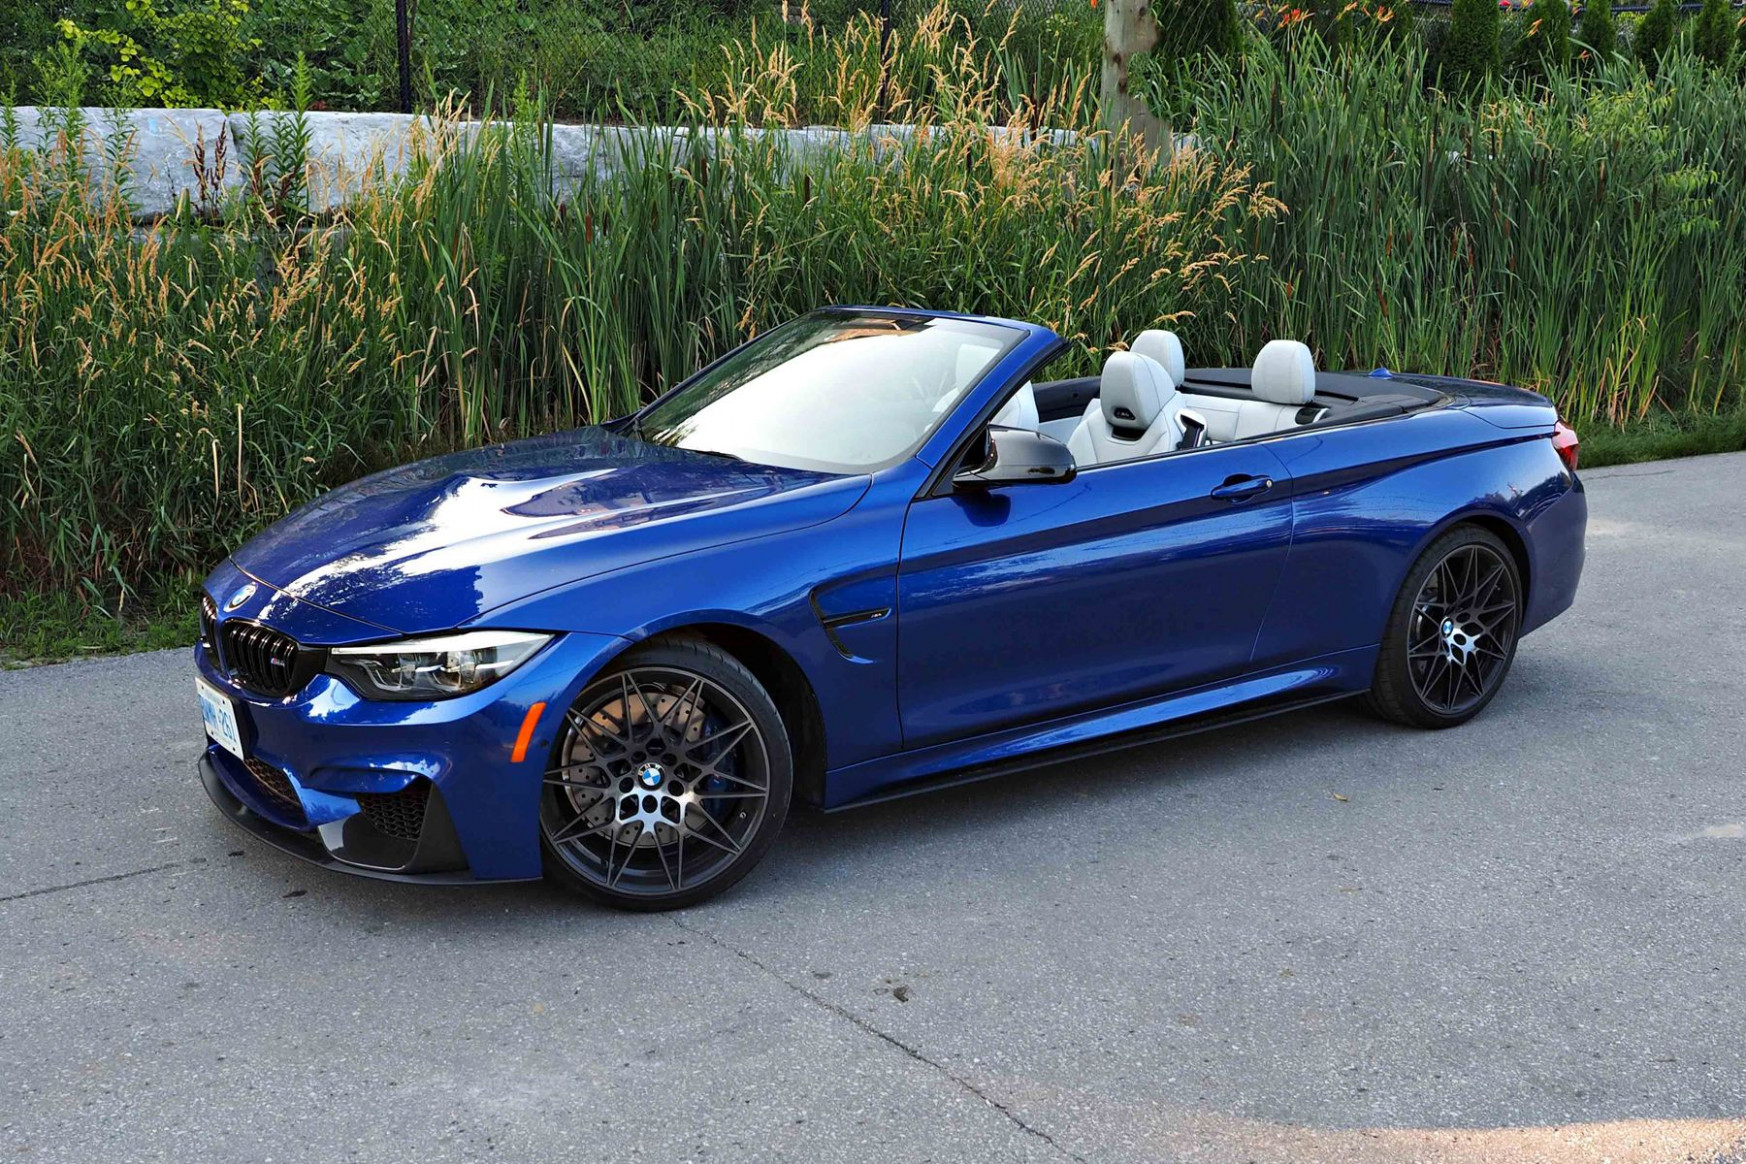 Want a 9 BMW M9 Cabriolet? Check out these competitors first ..